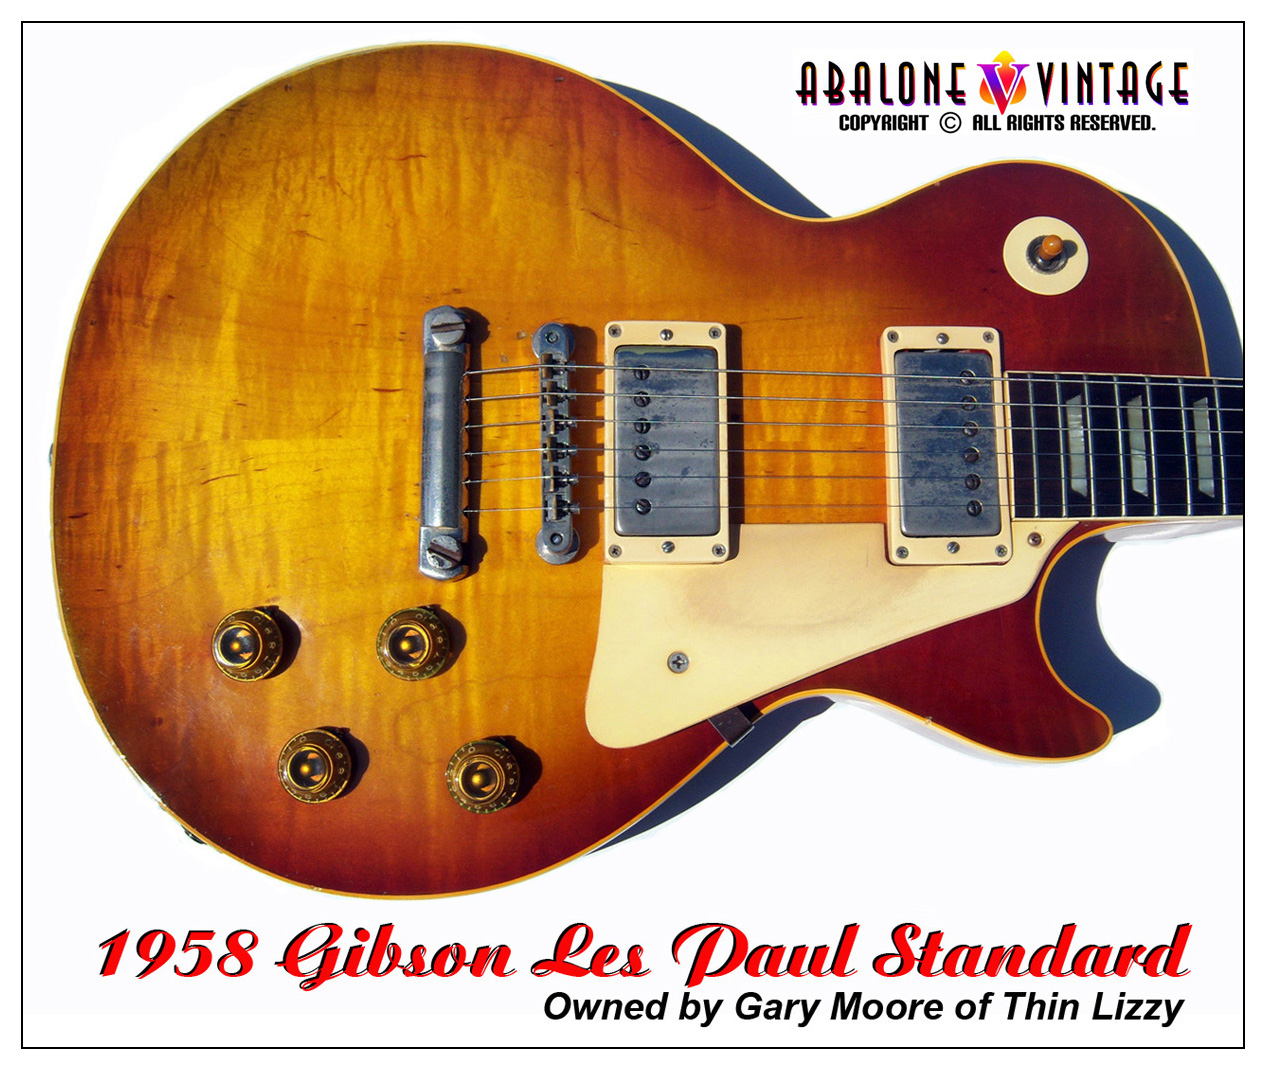 1958 Gibson Les Paul Standard guitar owned by Gary Moore of Thin Lizzy.